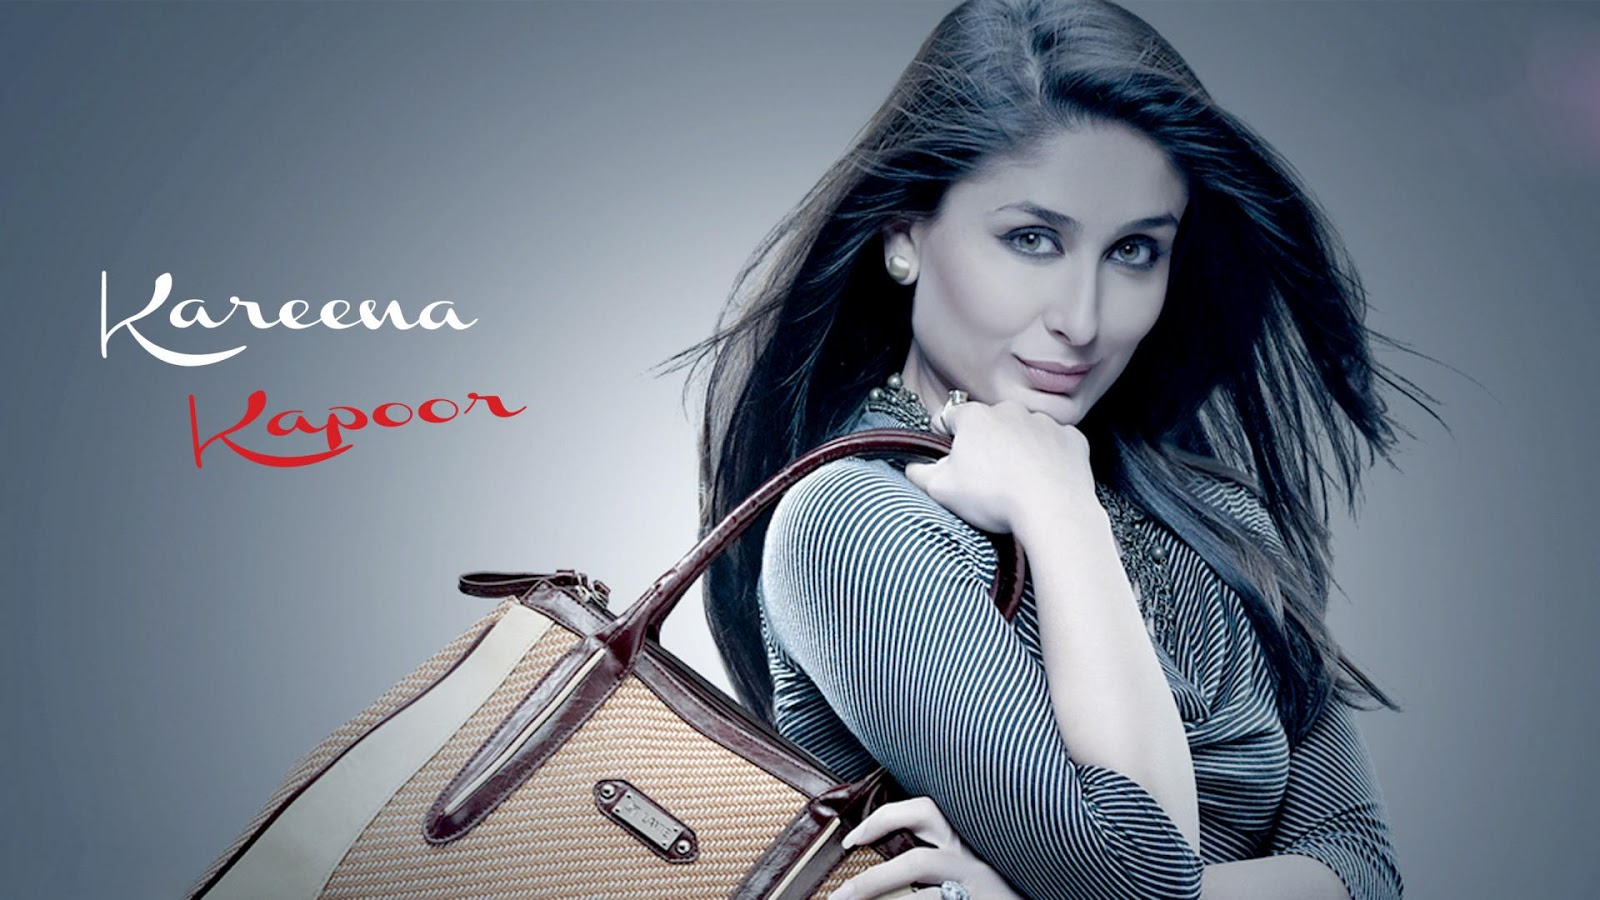 kareena kapoor stylish images